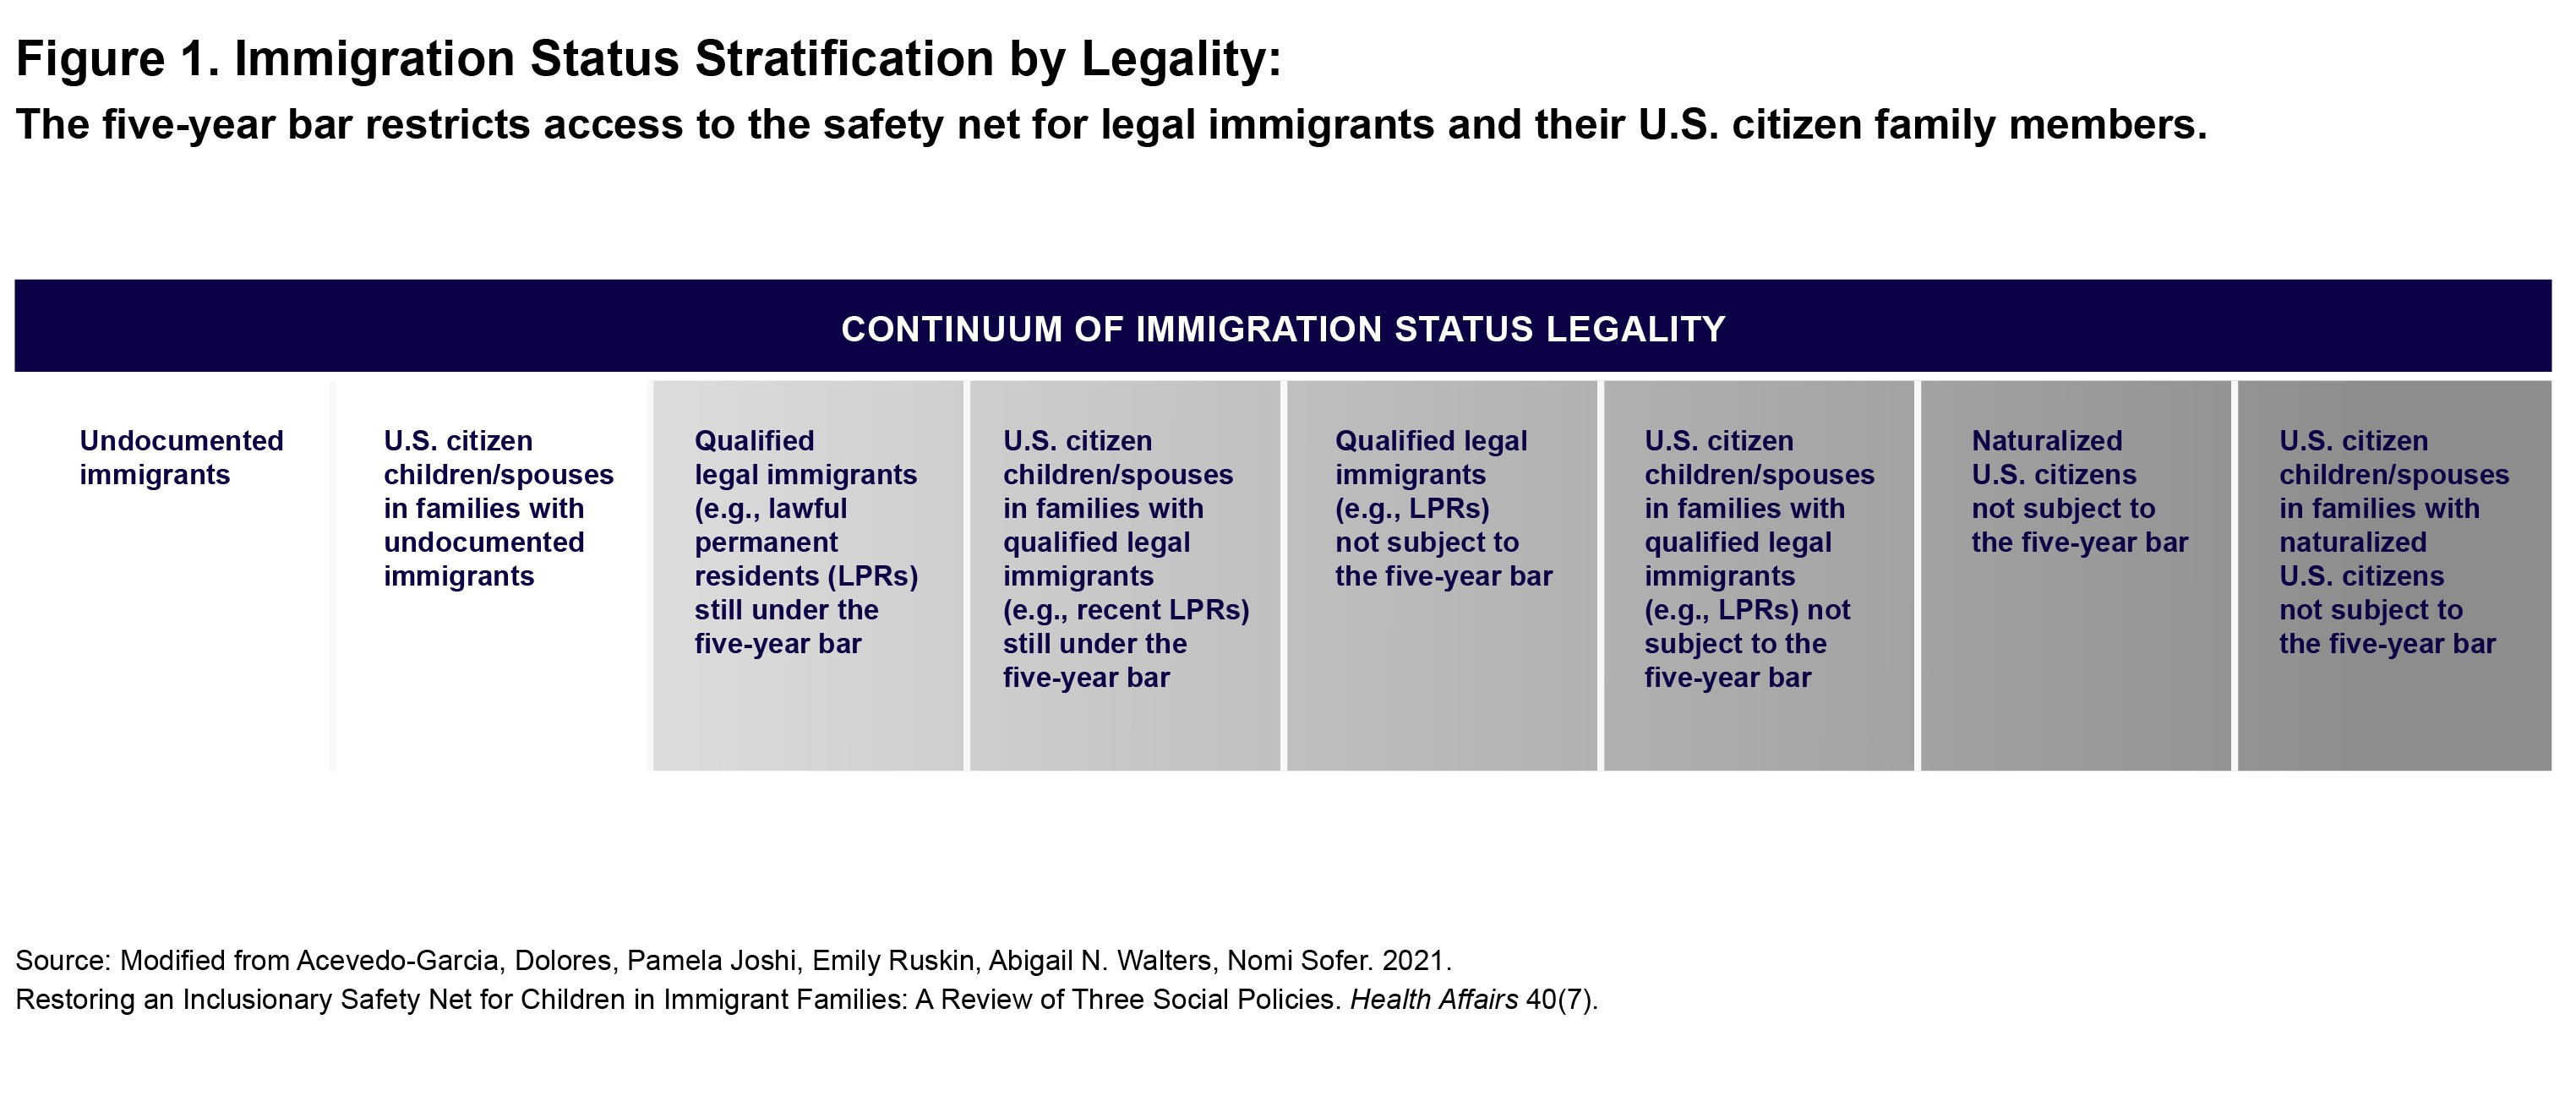 Table showing immigration status stratification by legality